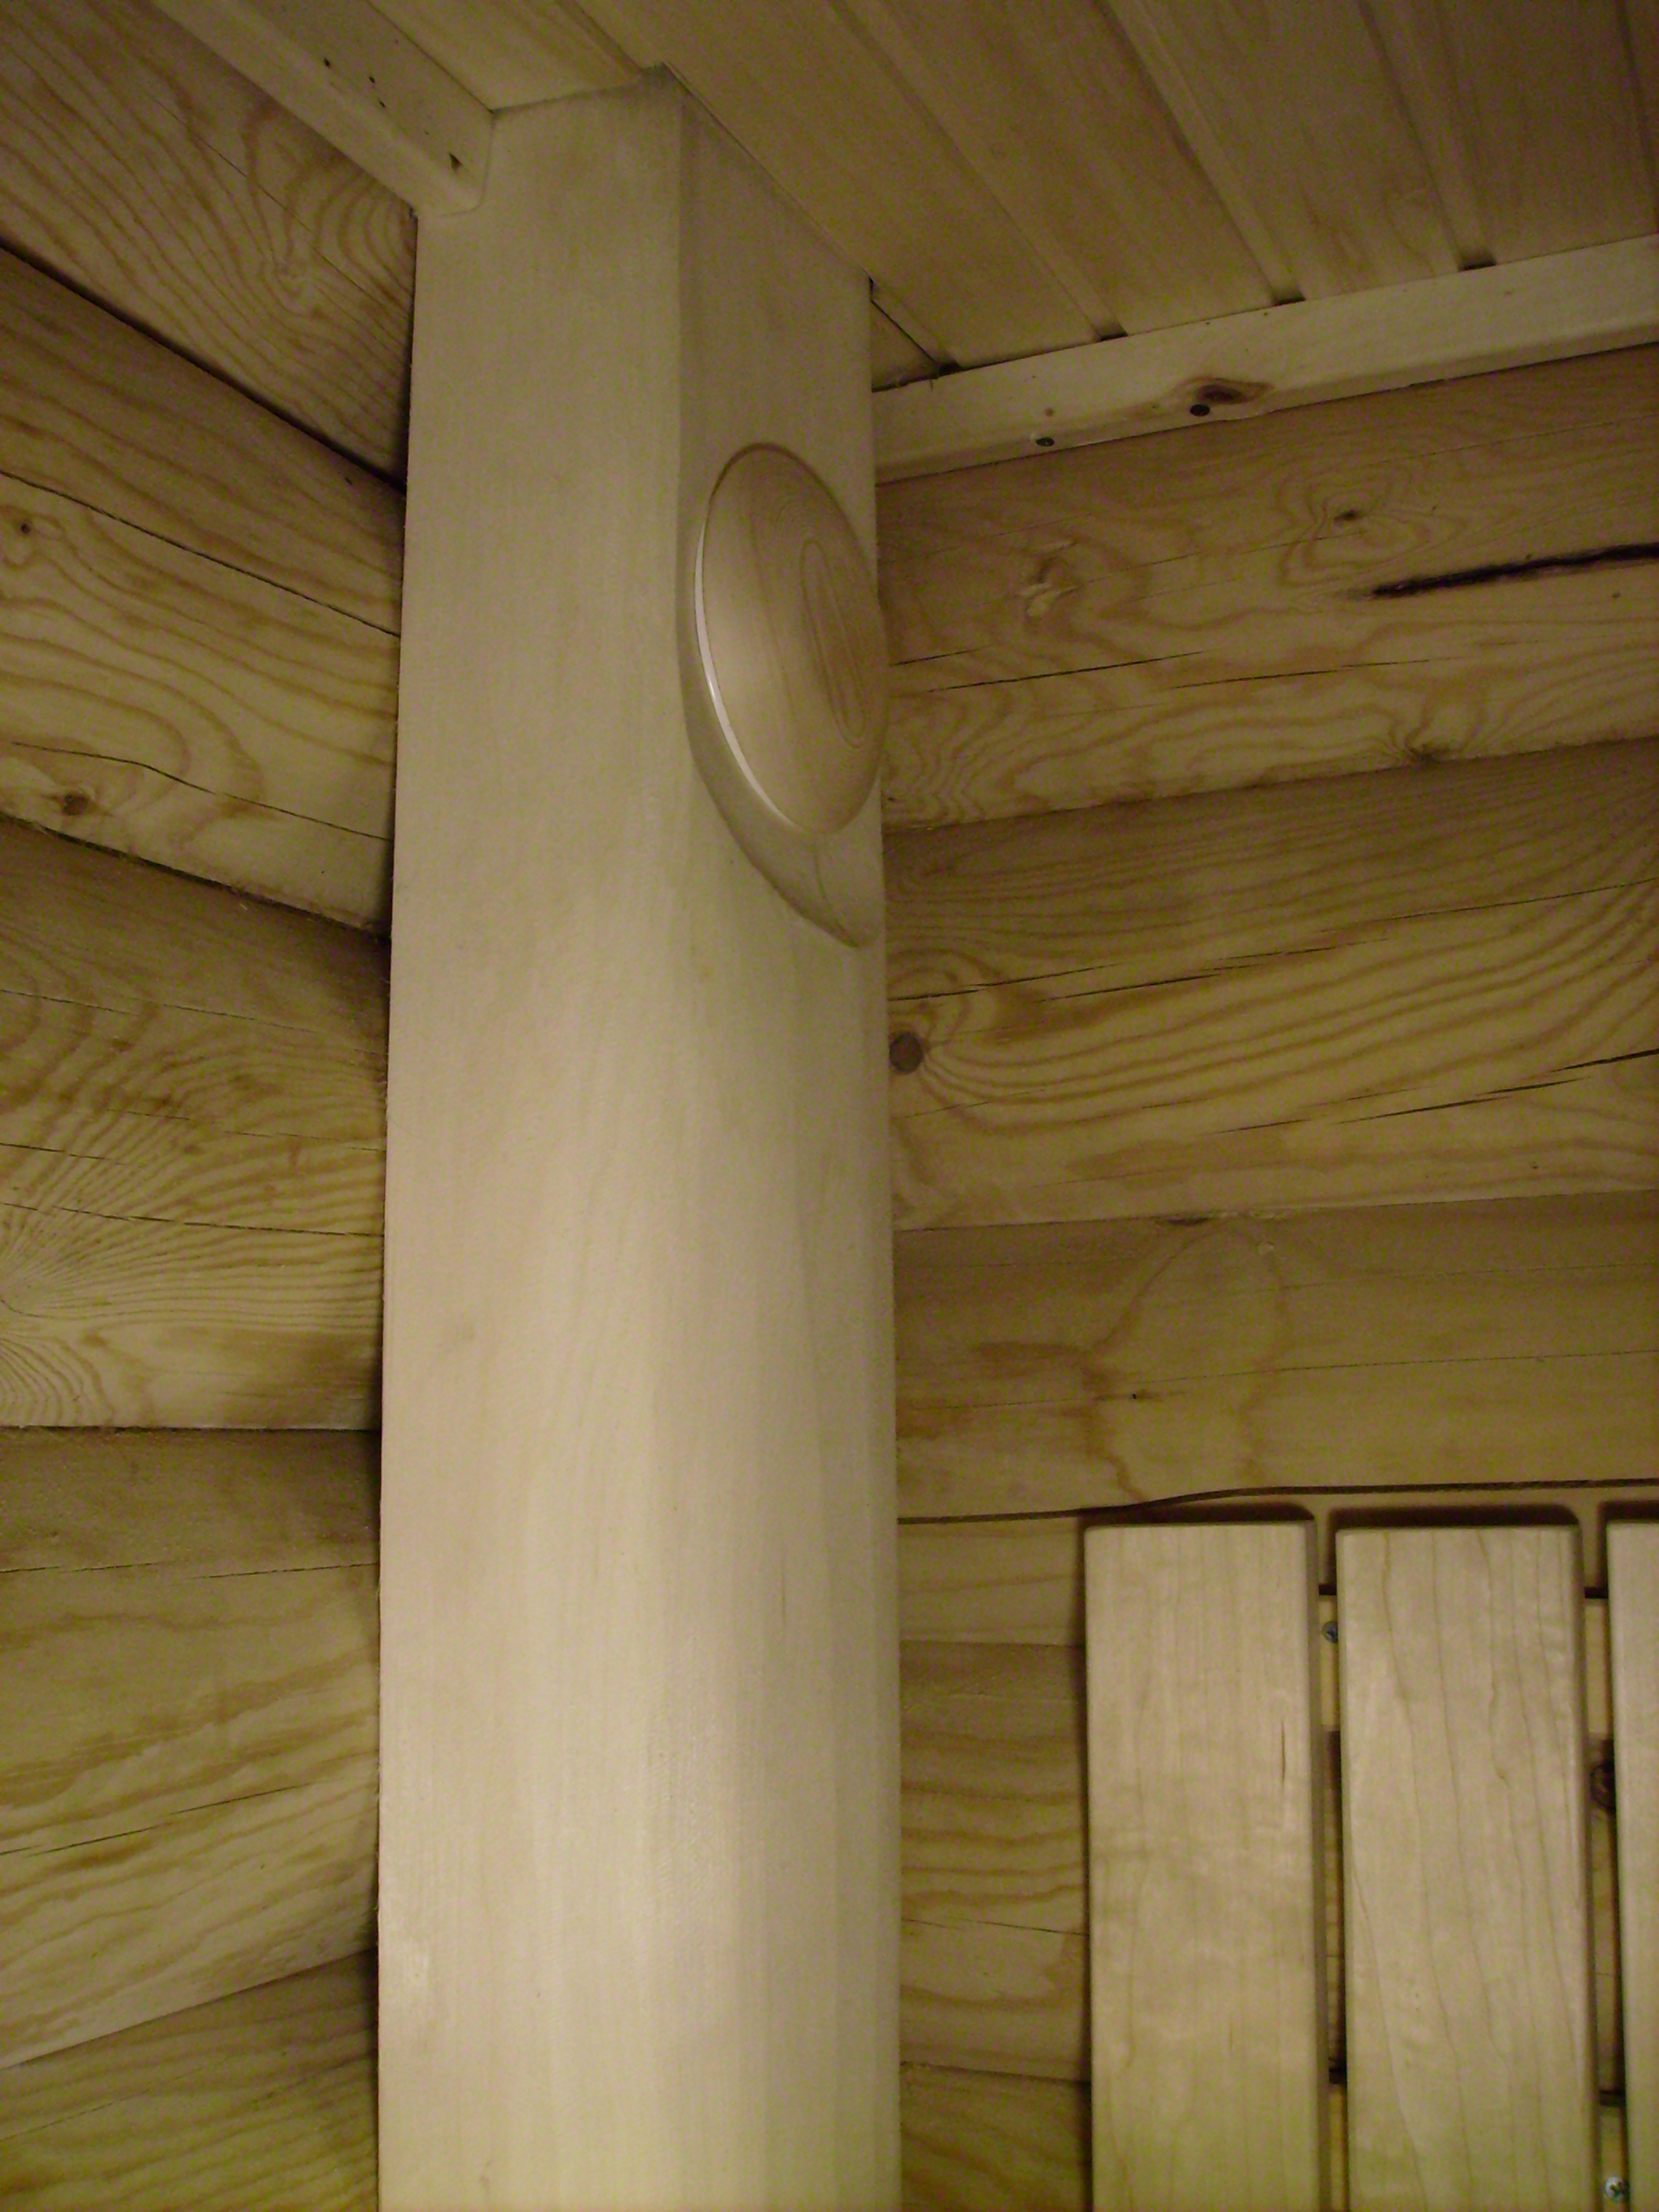 ventilation in the steam room from the aspen trunk